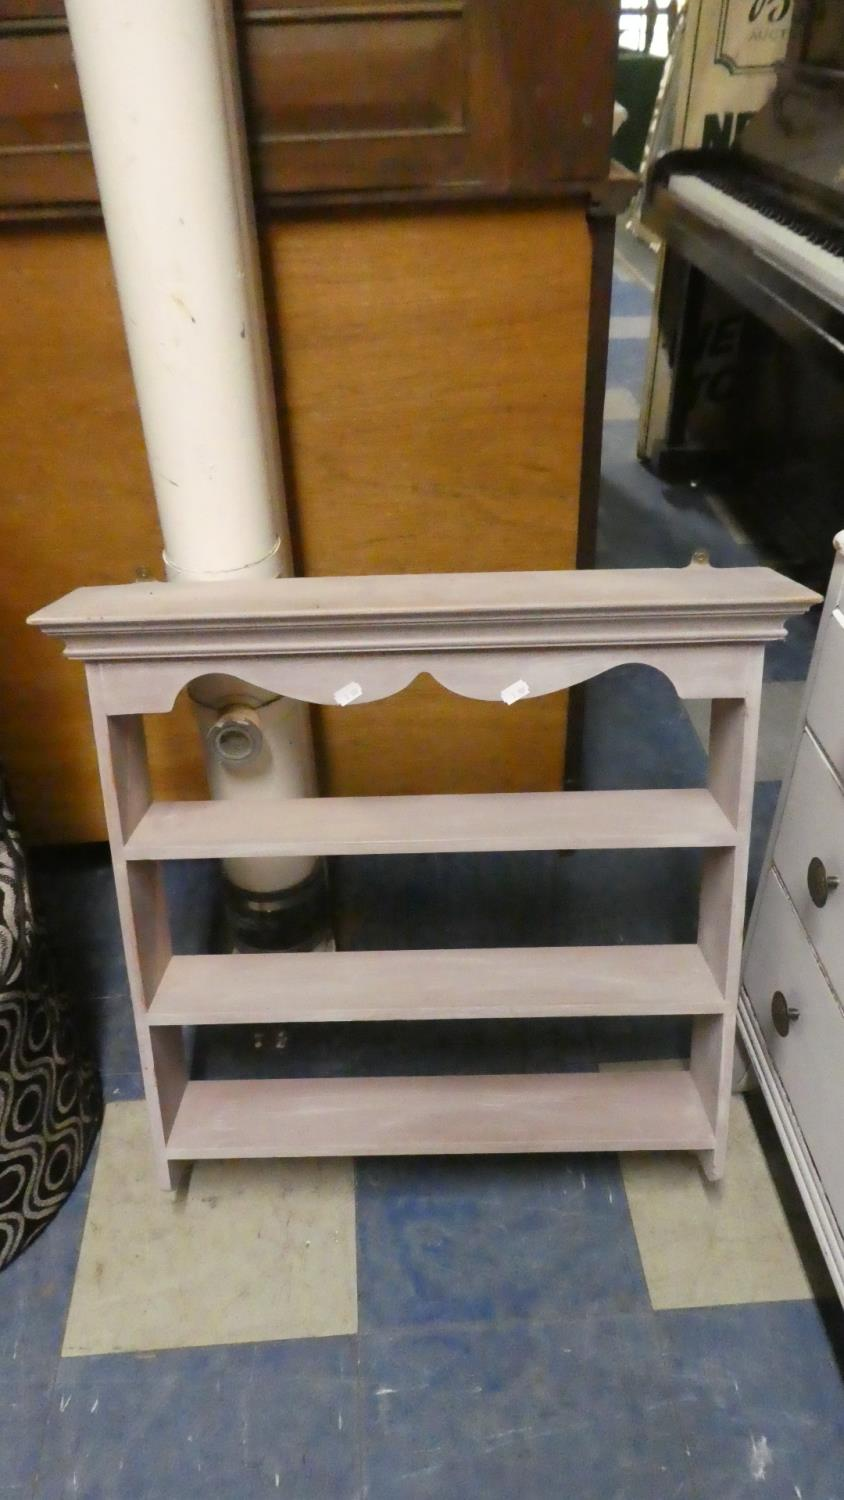 Lot 422 - A Painted Wall Hanging Three Shelf Unit, 66cm Wide